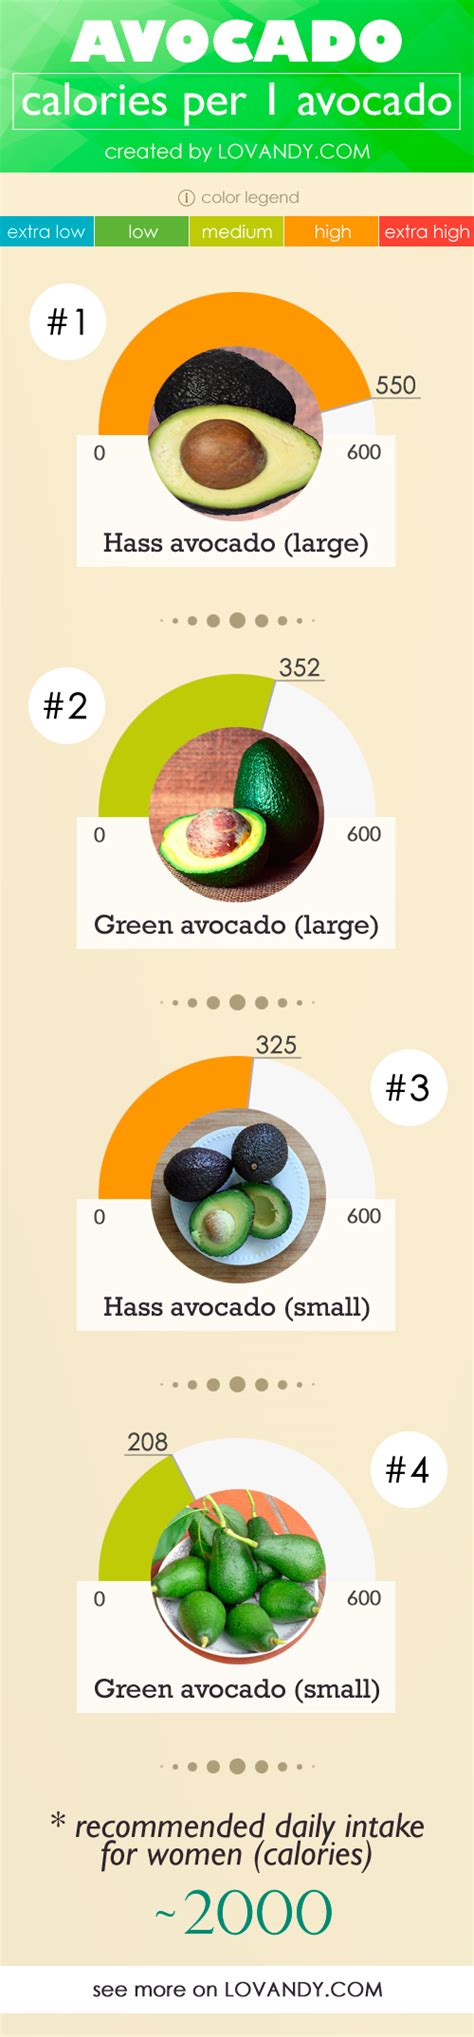 avocado calories